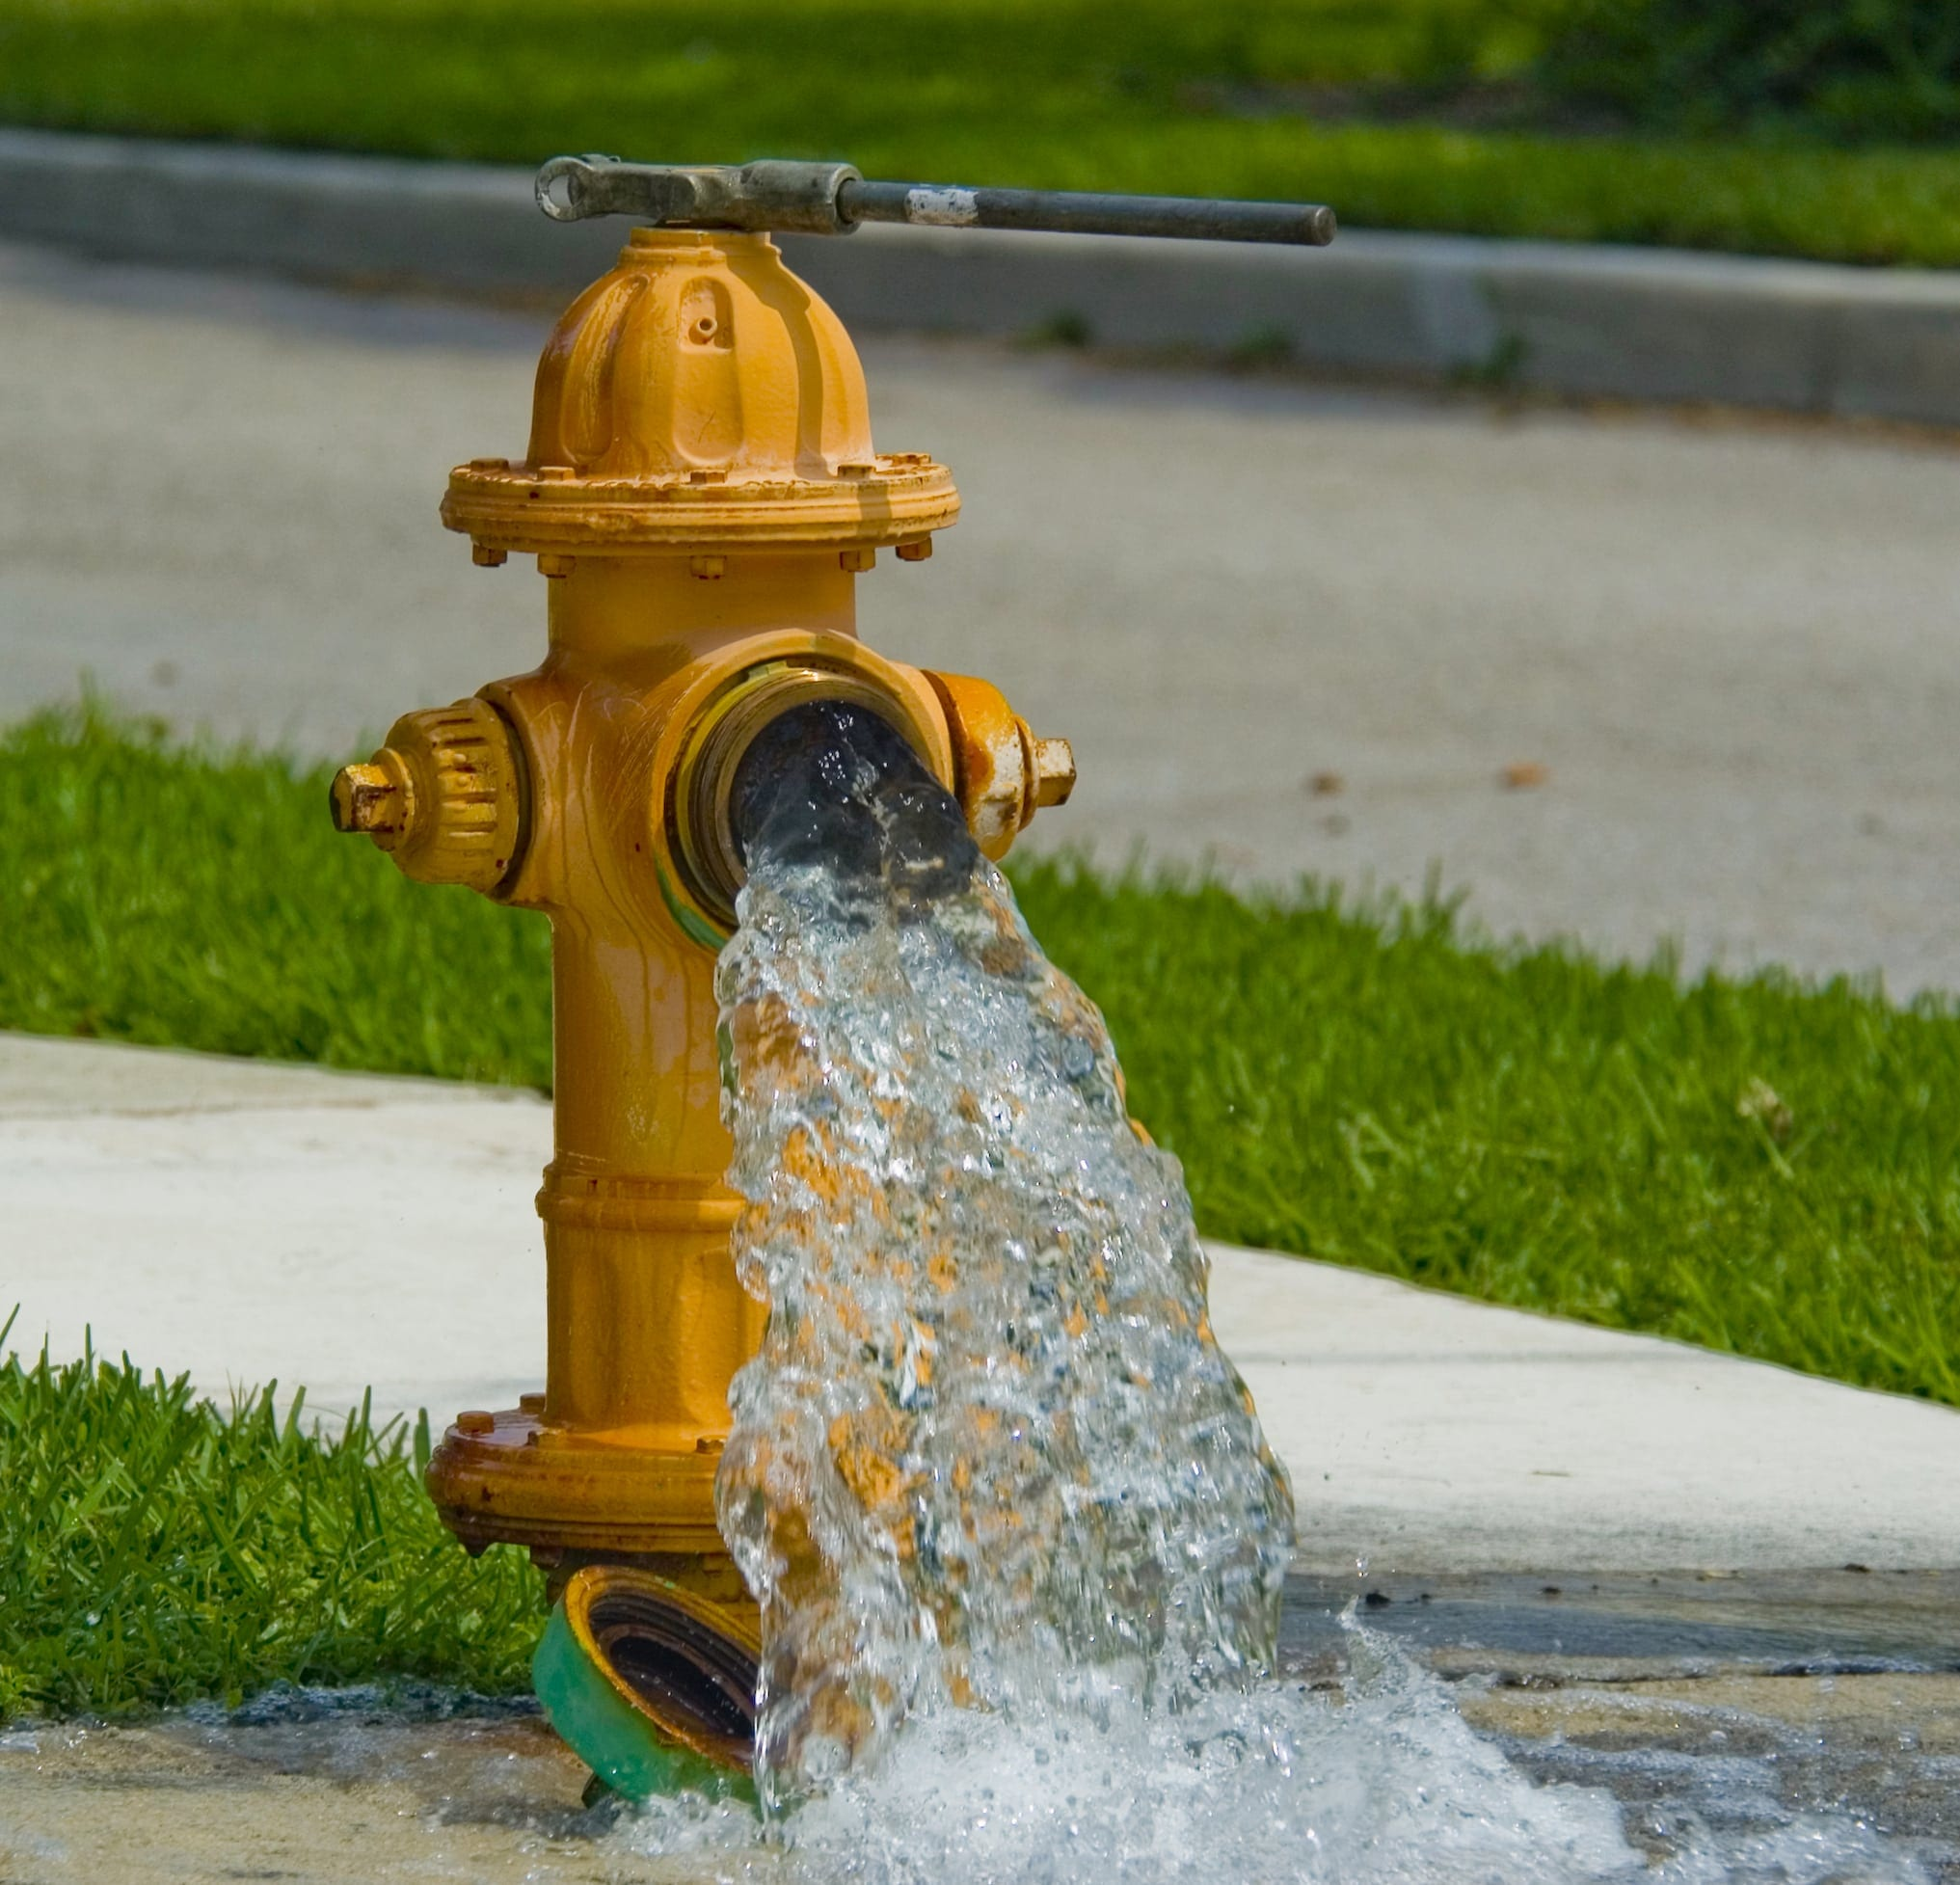 Image result for fire hydrant images